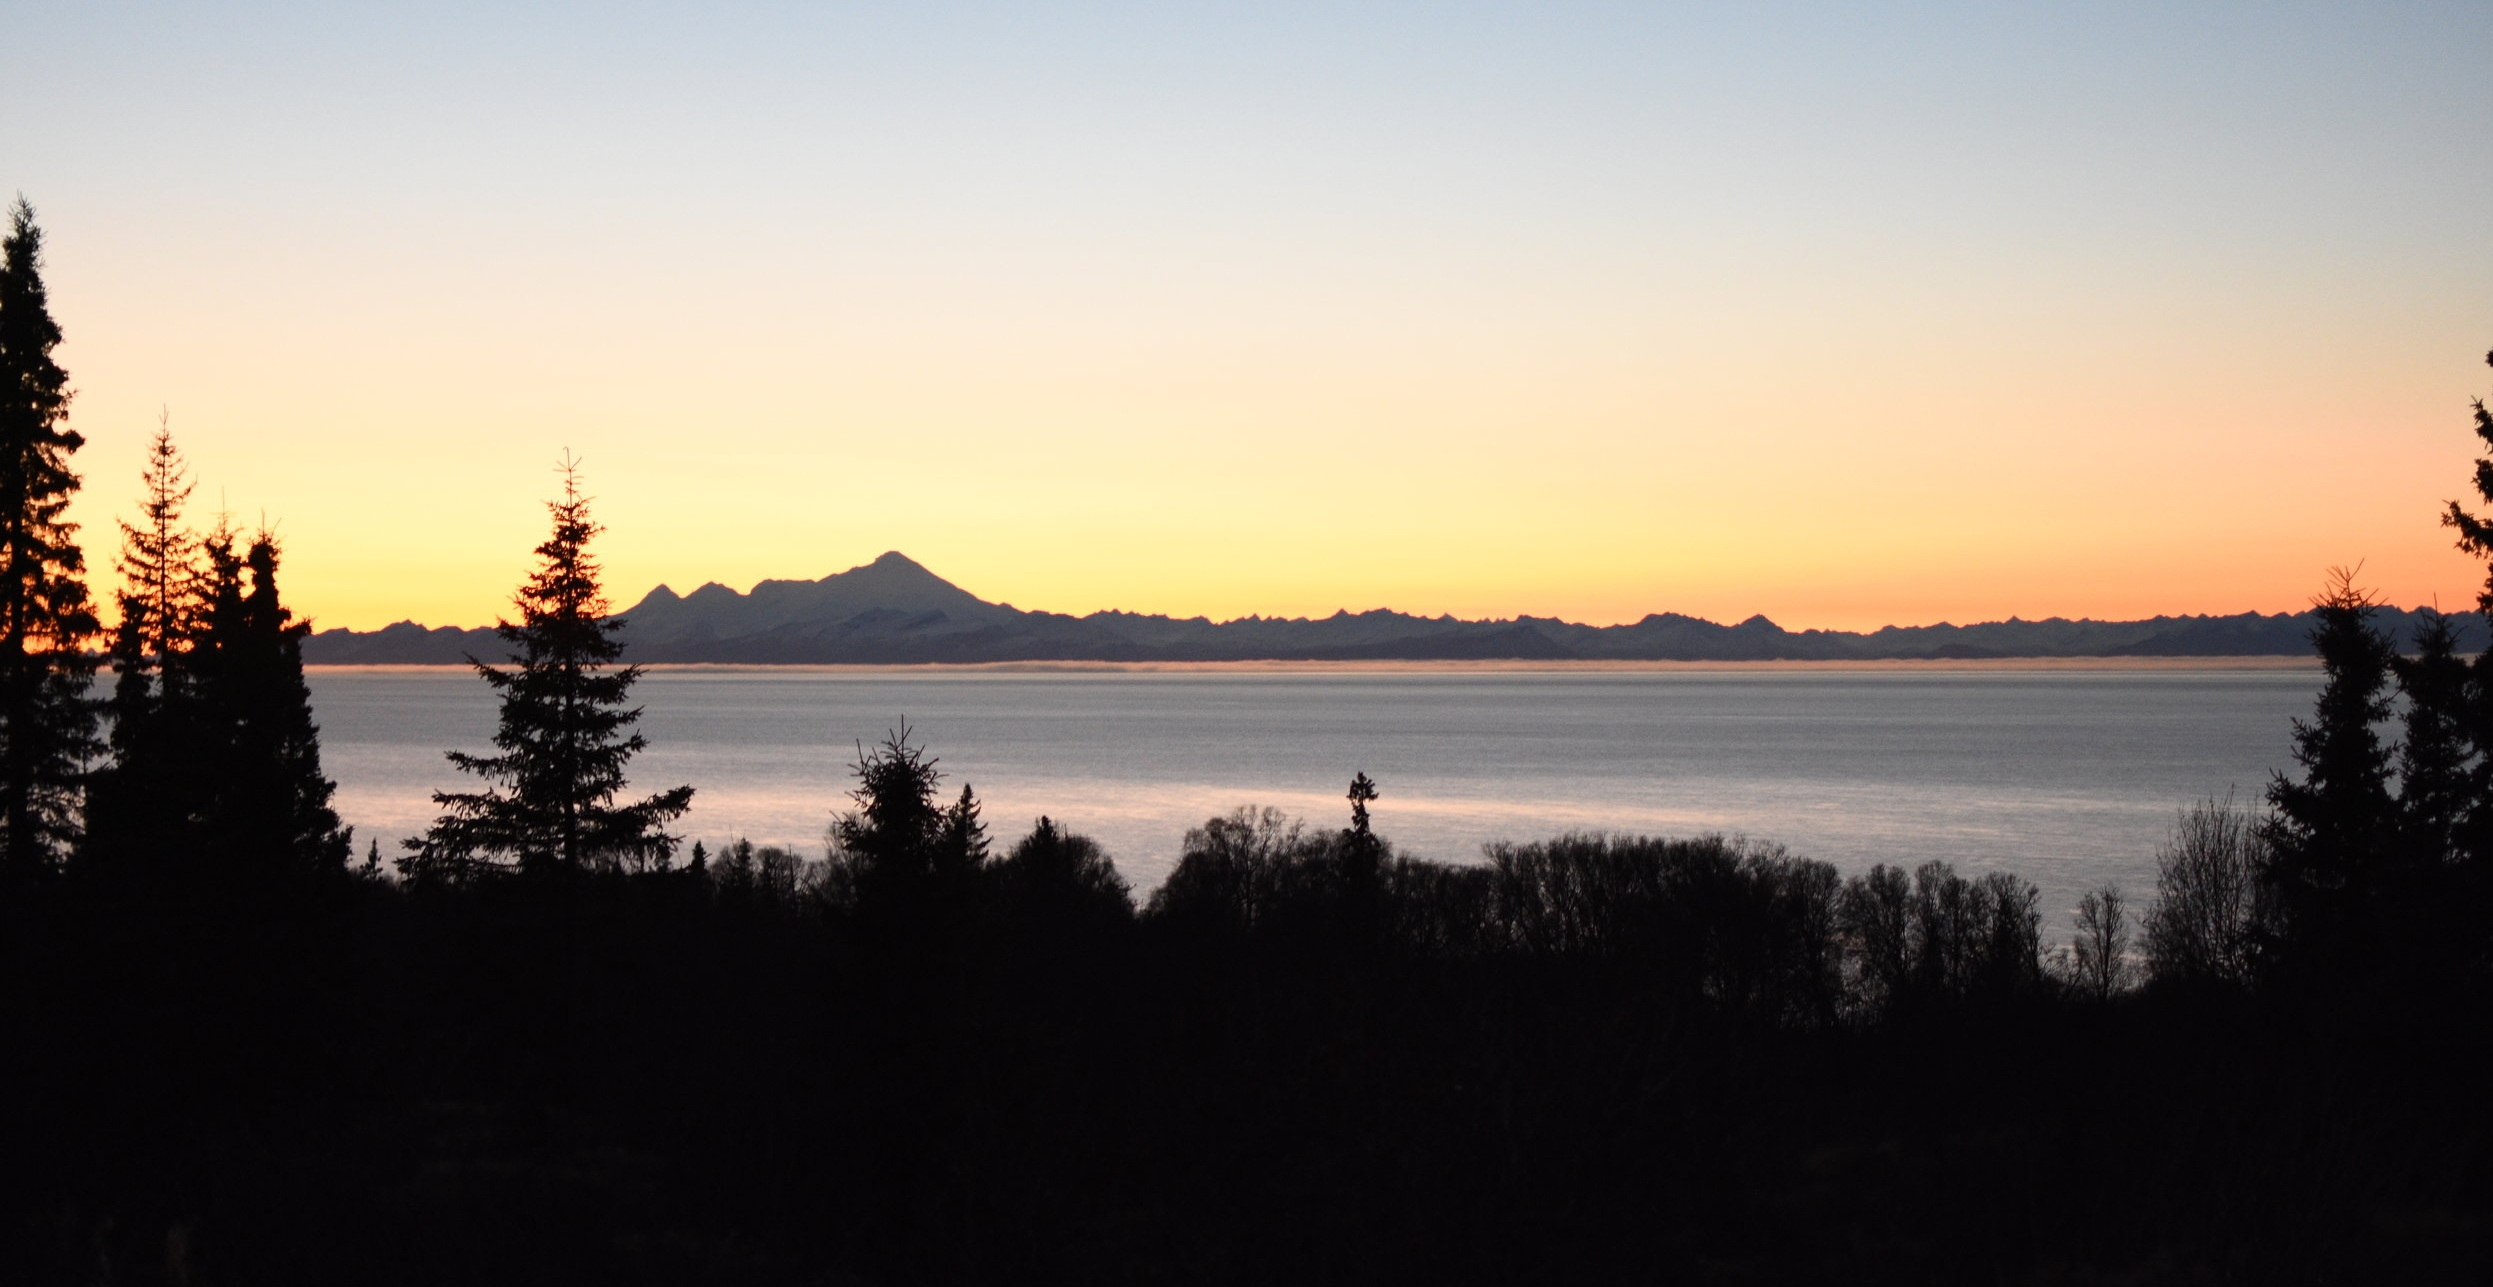 A view across the Cook Inlet as we traveled down the Sterling Highway on our way to Homer.